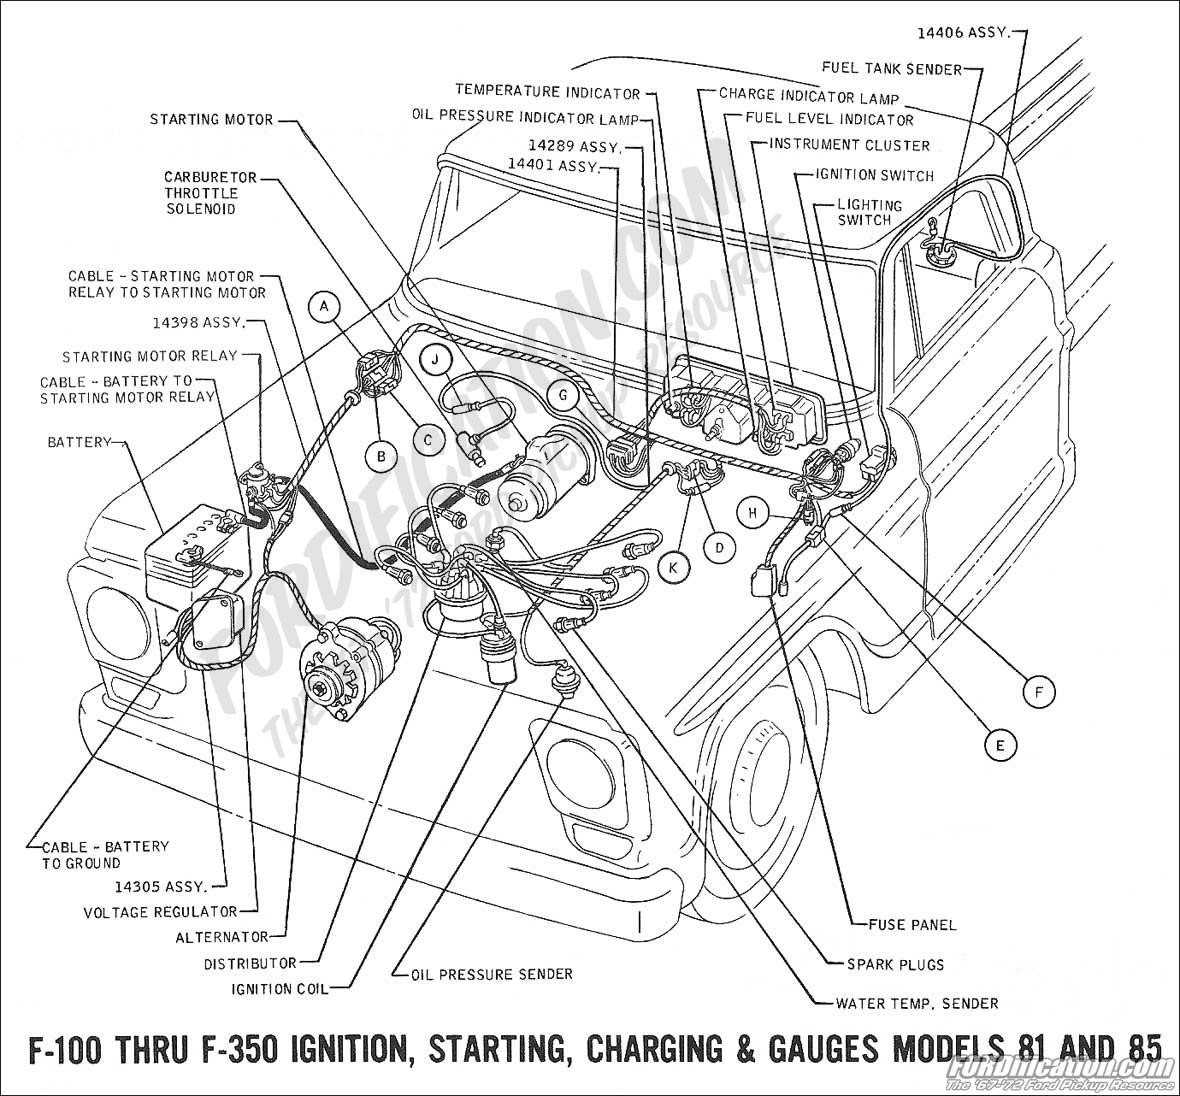 wiring 1969charging ford truck technical drawings and schematics section h wiring 1968 ford galaxie 500 wiring diagram at fashall.co